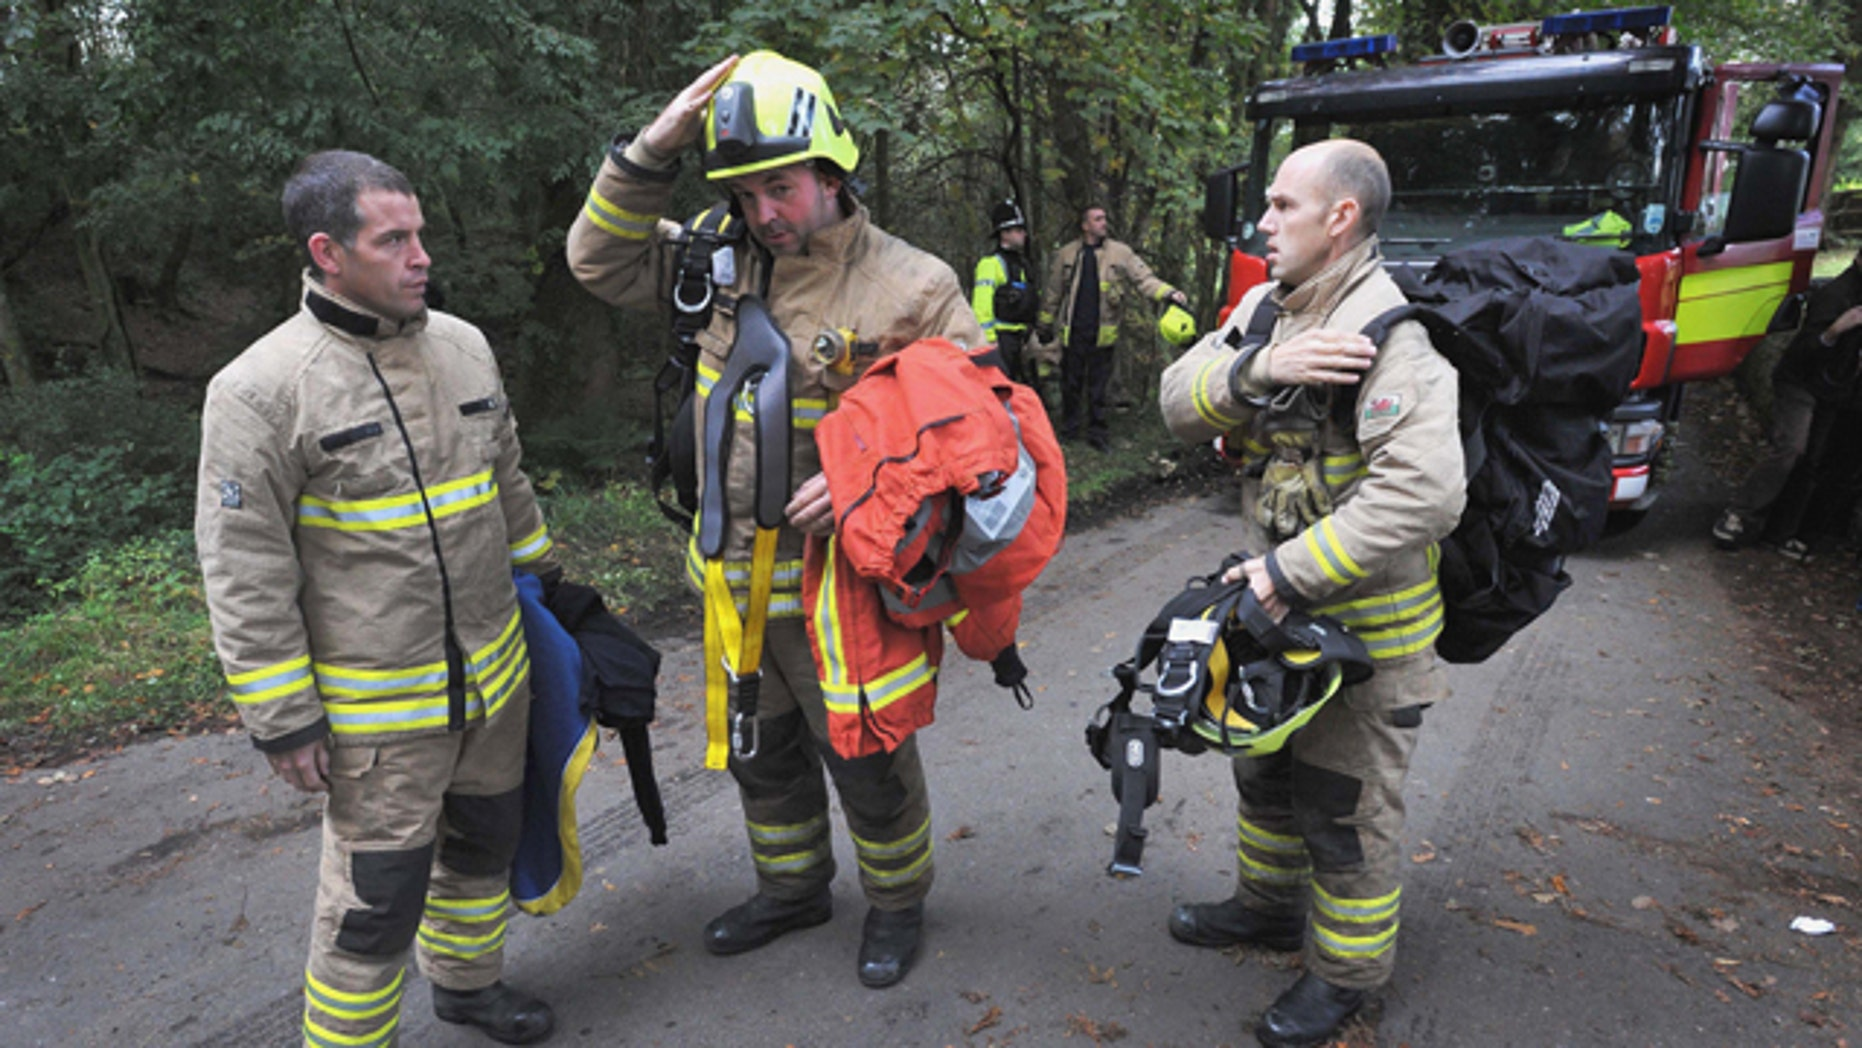 Sept. 16: Rescue workers arrive at the Gleision Colliery near Swansea, south Wales as a body is located in the flooded mine. British rescue workers found one miner dead after searching a flooded coal mine in south Wales, but pressed on Friday with the search for three others trapped underground.